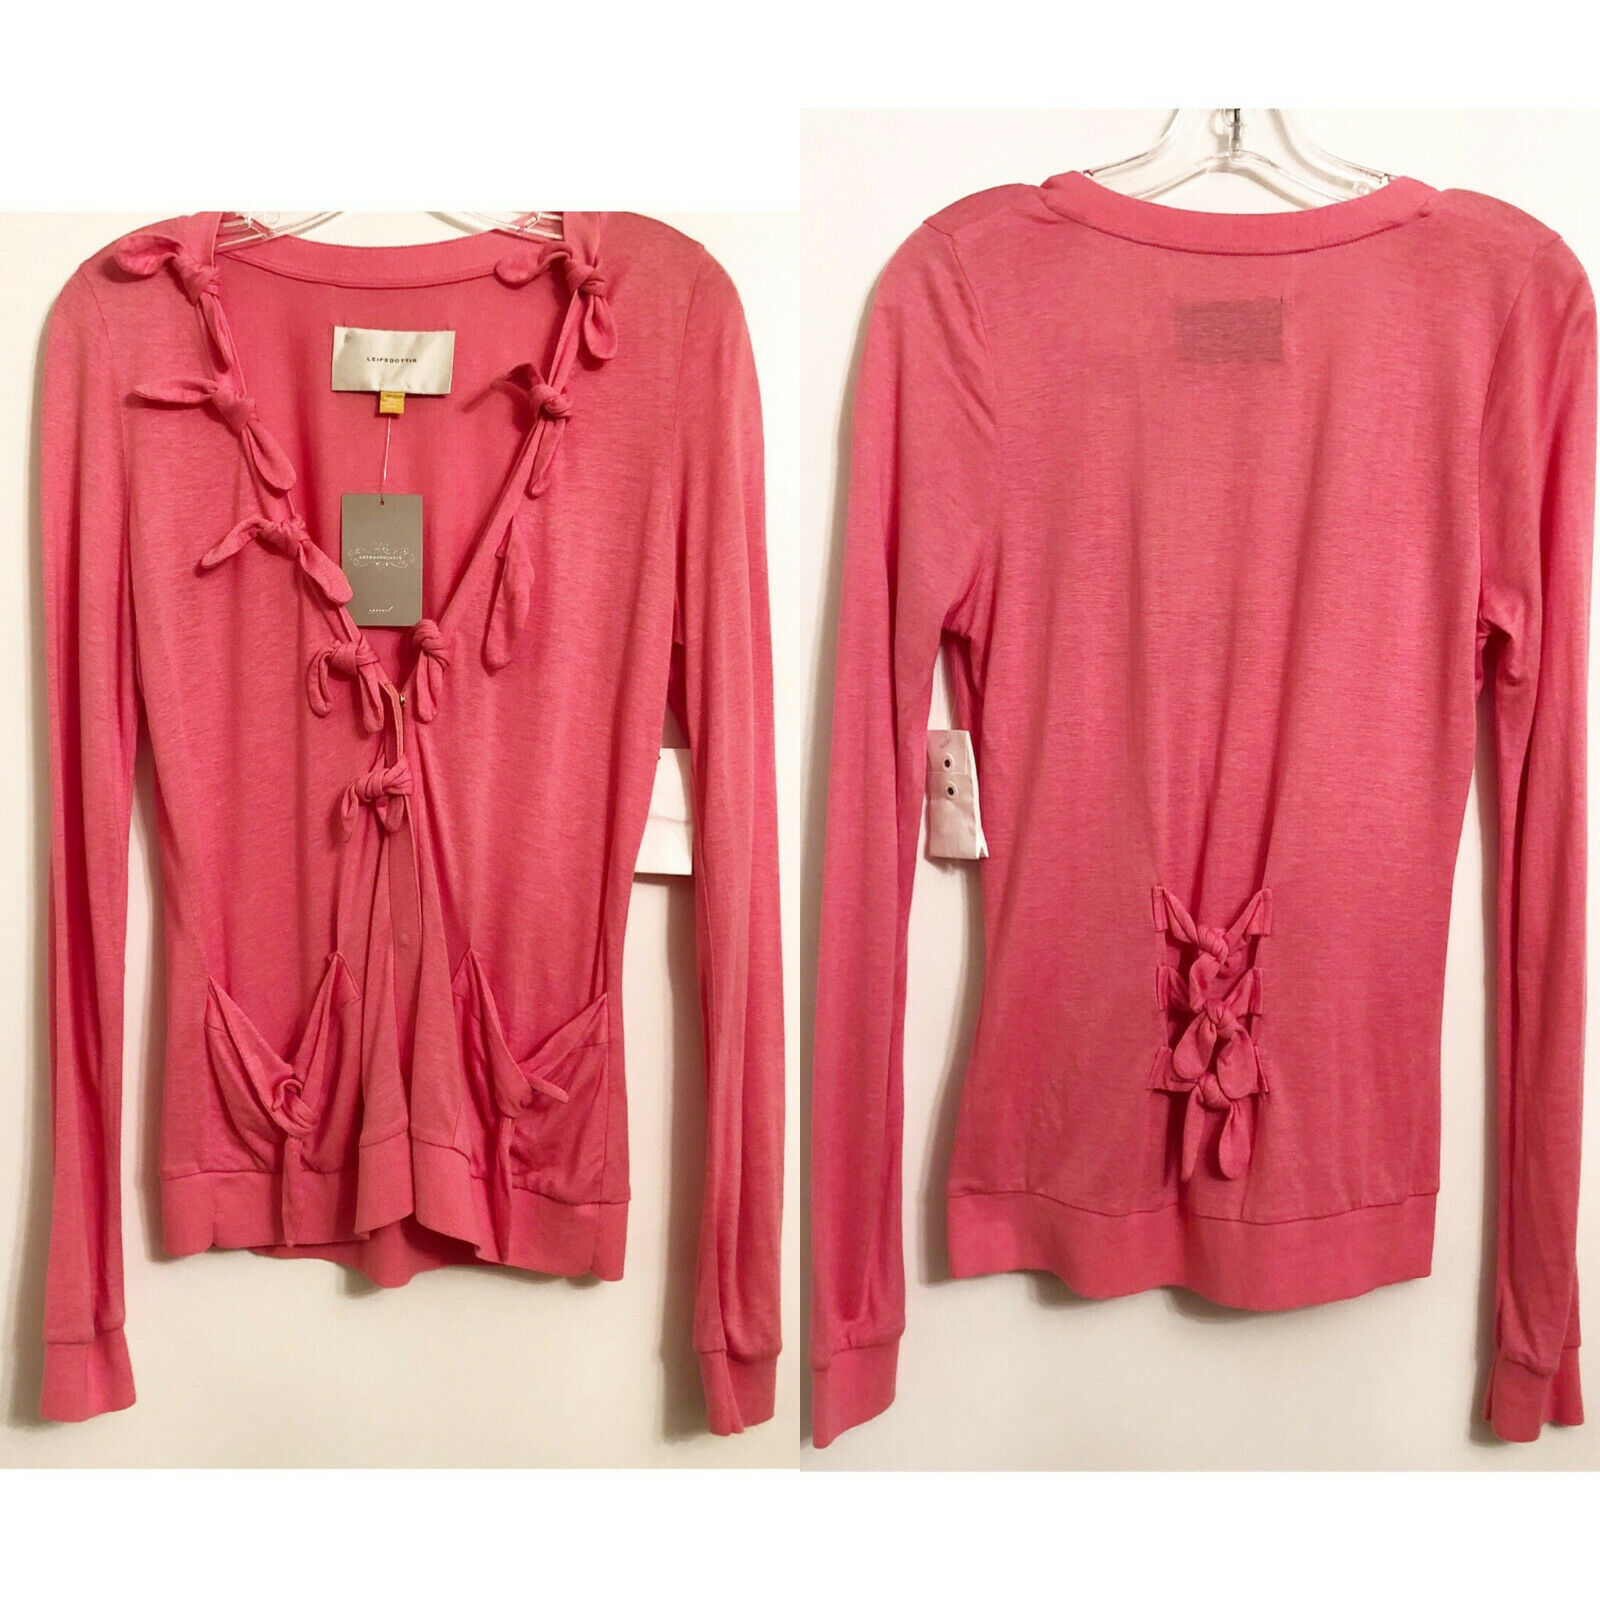 Primary image for NWT Anthropologie Leifsdottir Pink Linen Blend Cardigan Sweater Size S $148